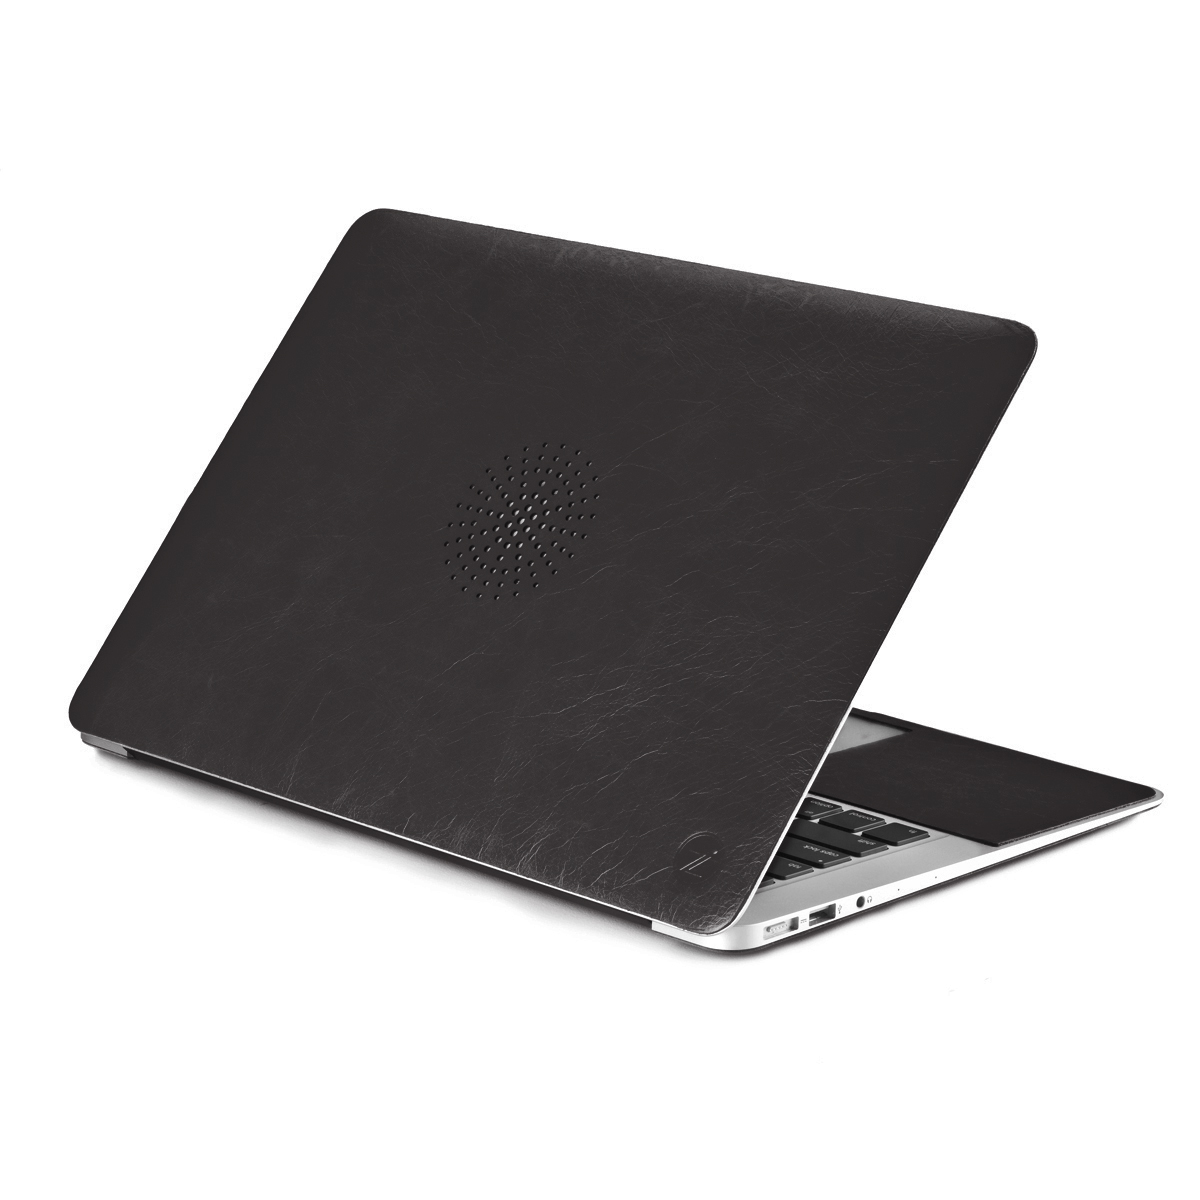 Чехол-накладка Cozistyle Leather Skin Black для  MacBook 15